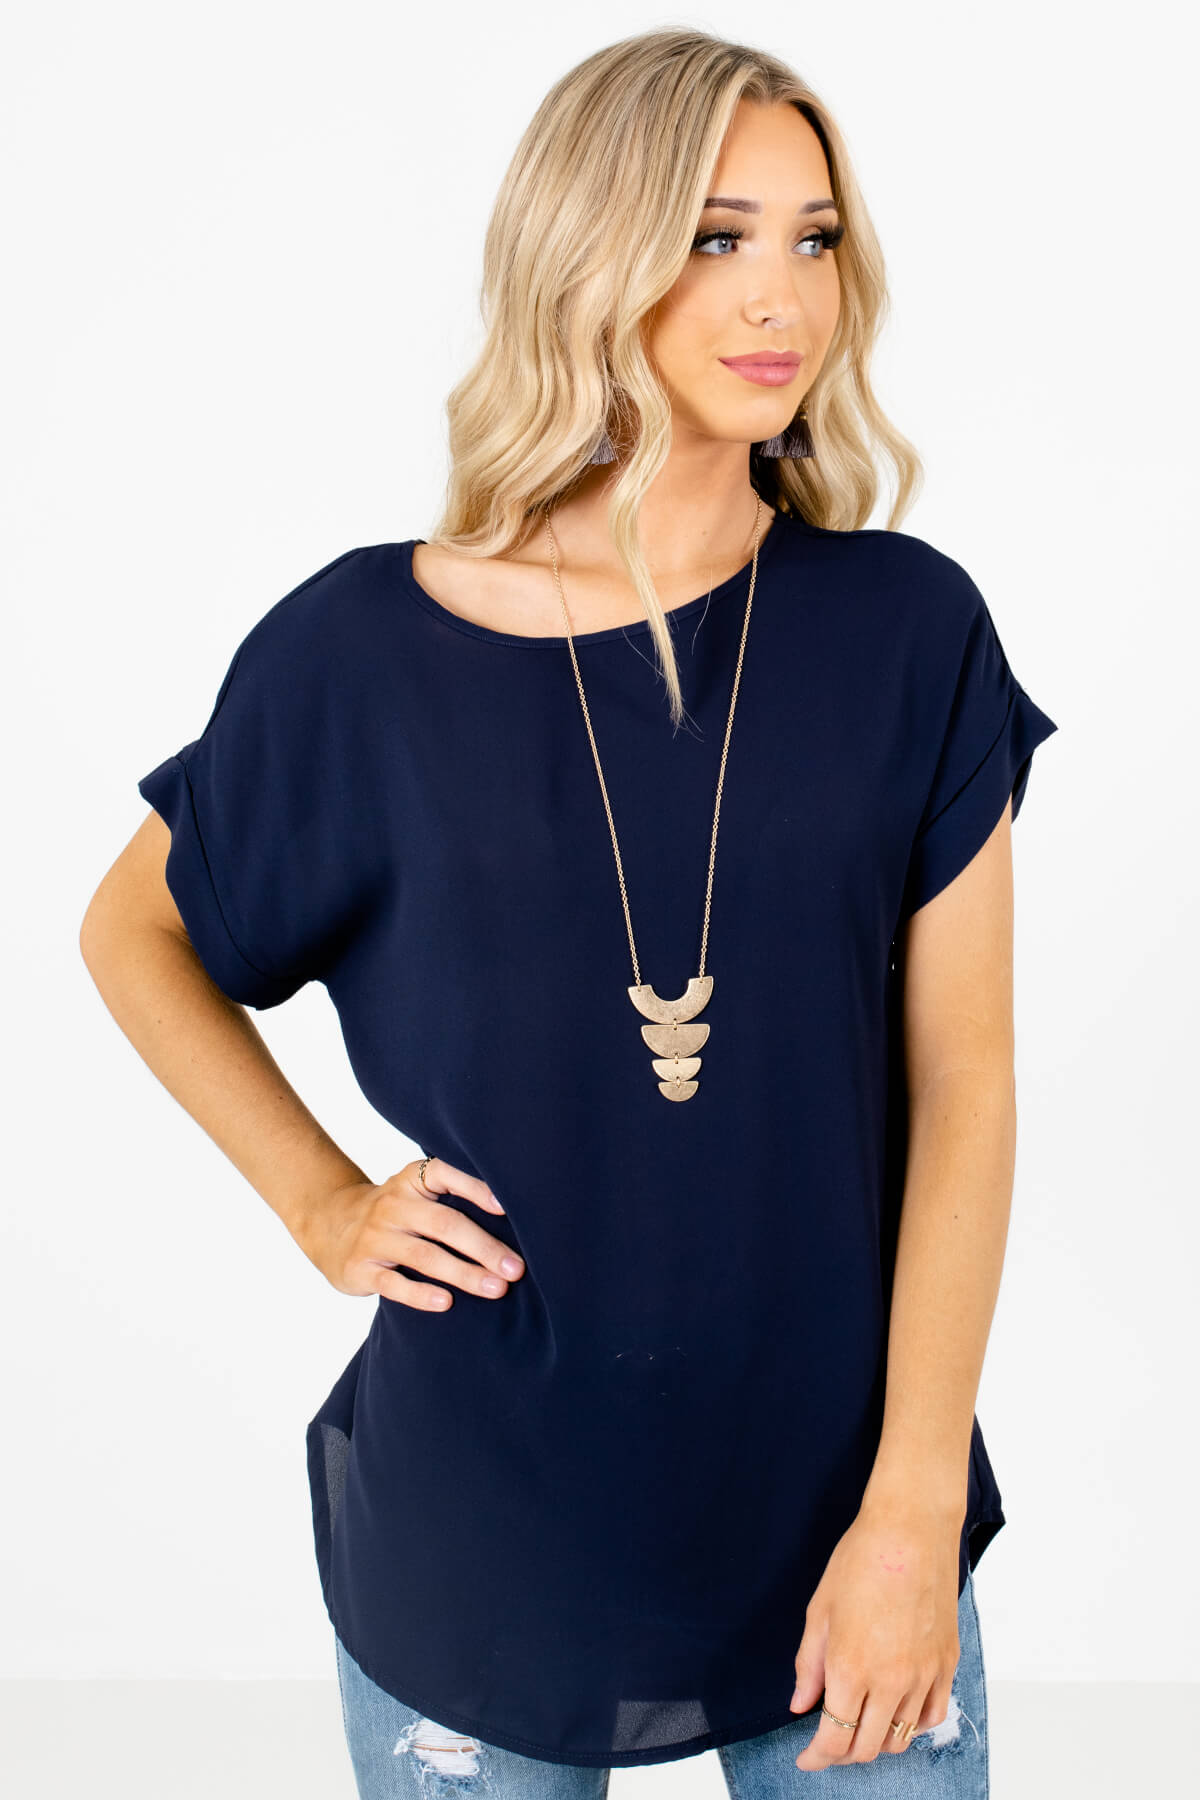 Navy Blue Lightweight and Flowy Boutique Blouses for Women